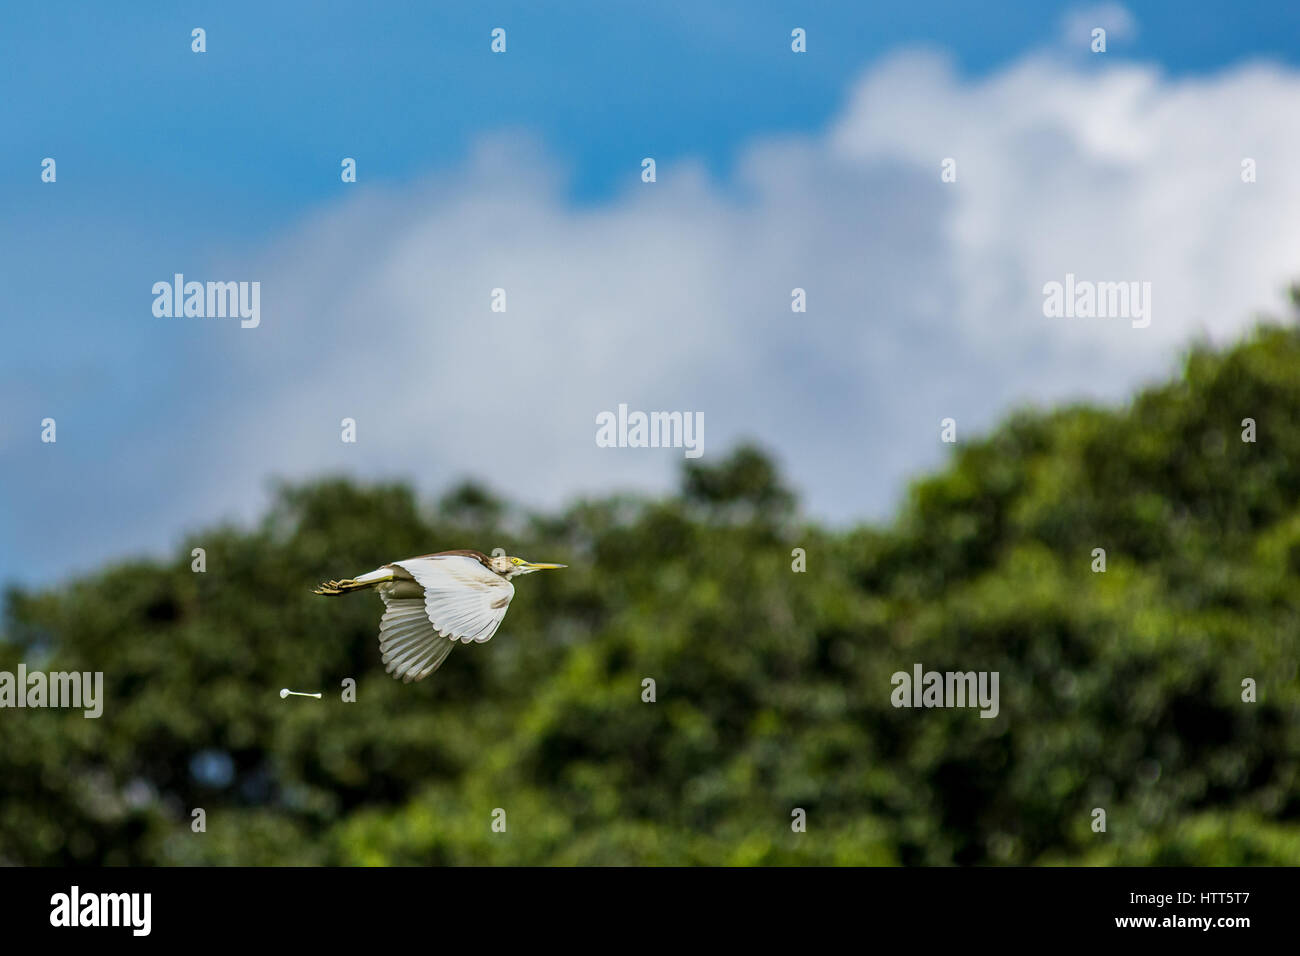 A large heron bird pooing mid flight with a background of trees and blue sky with shallow depth of field. - Stock Image